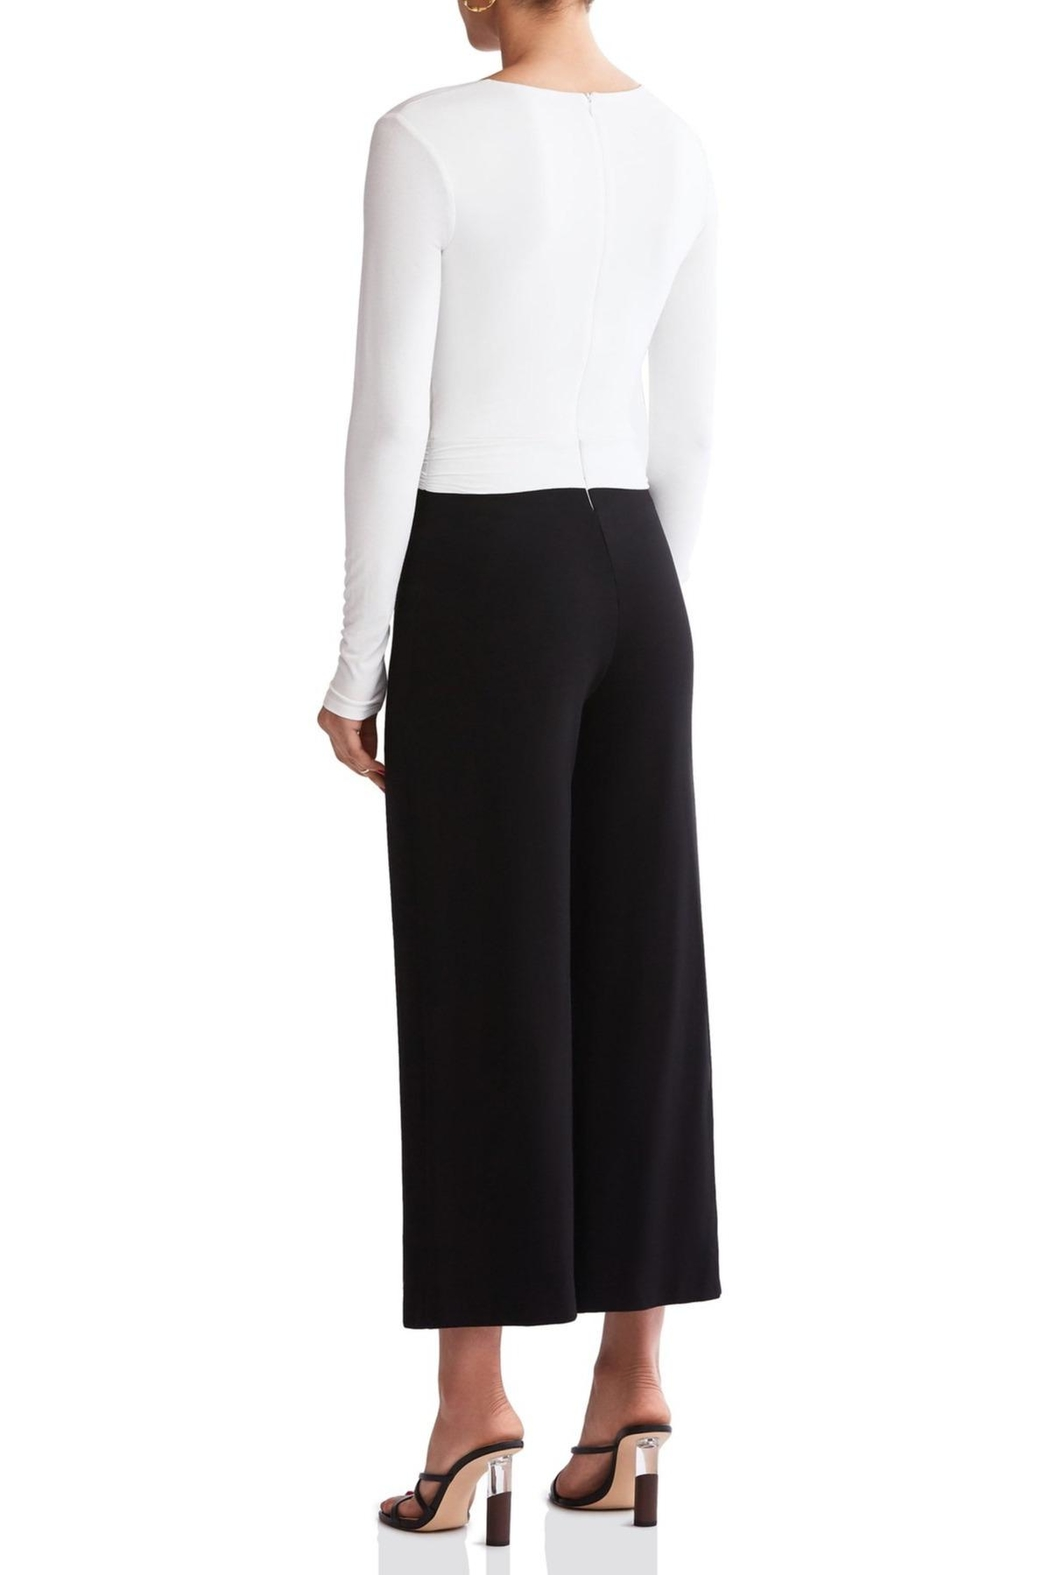 Bailey 44 Black & White Jumpsuit - Side Cropped Image